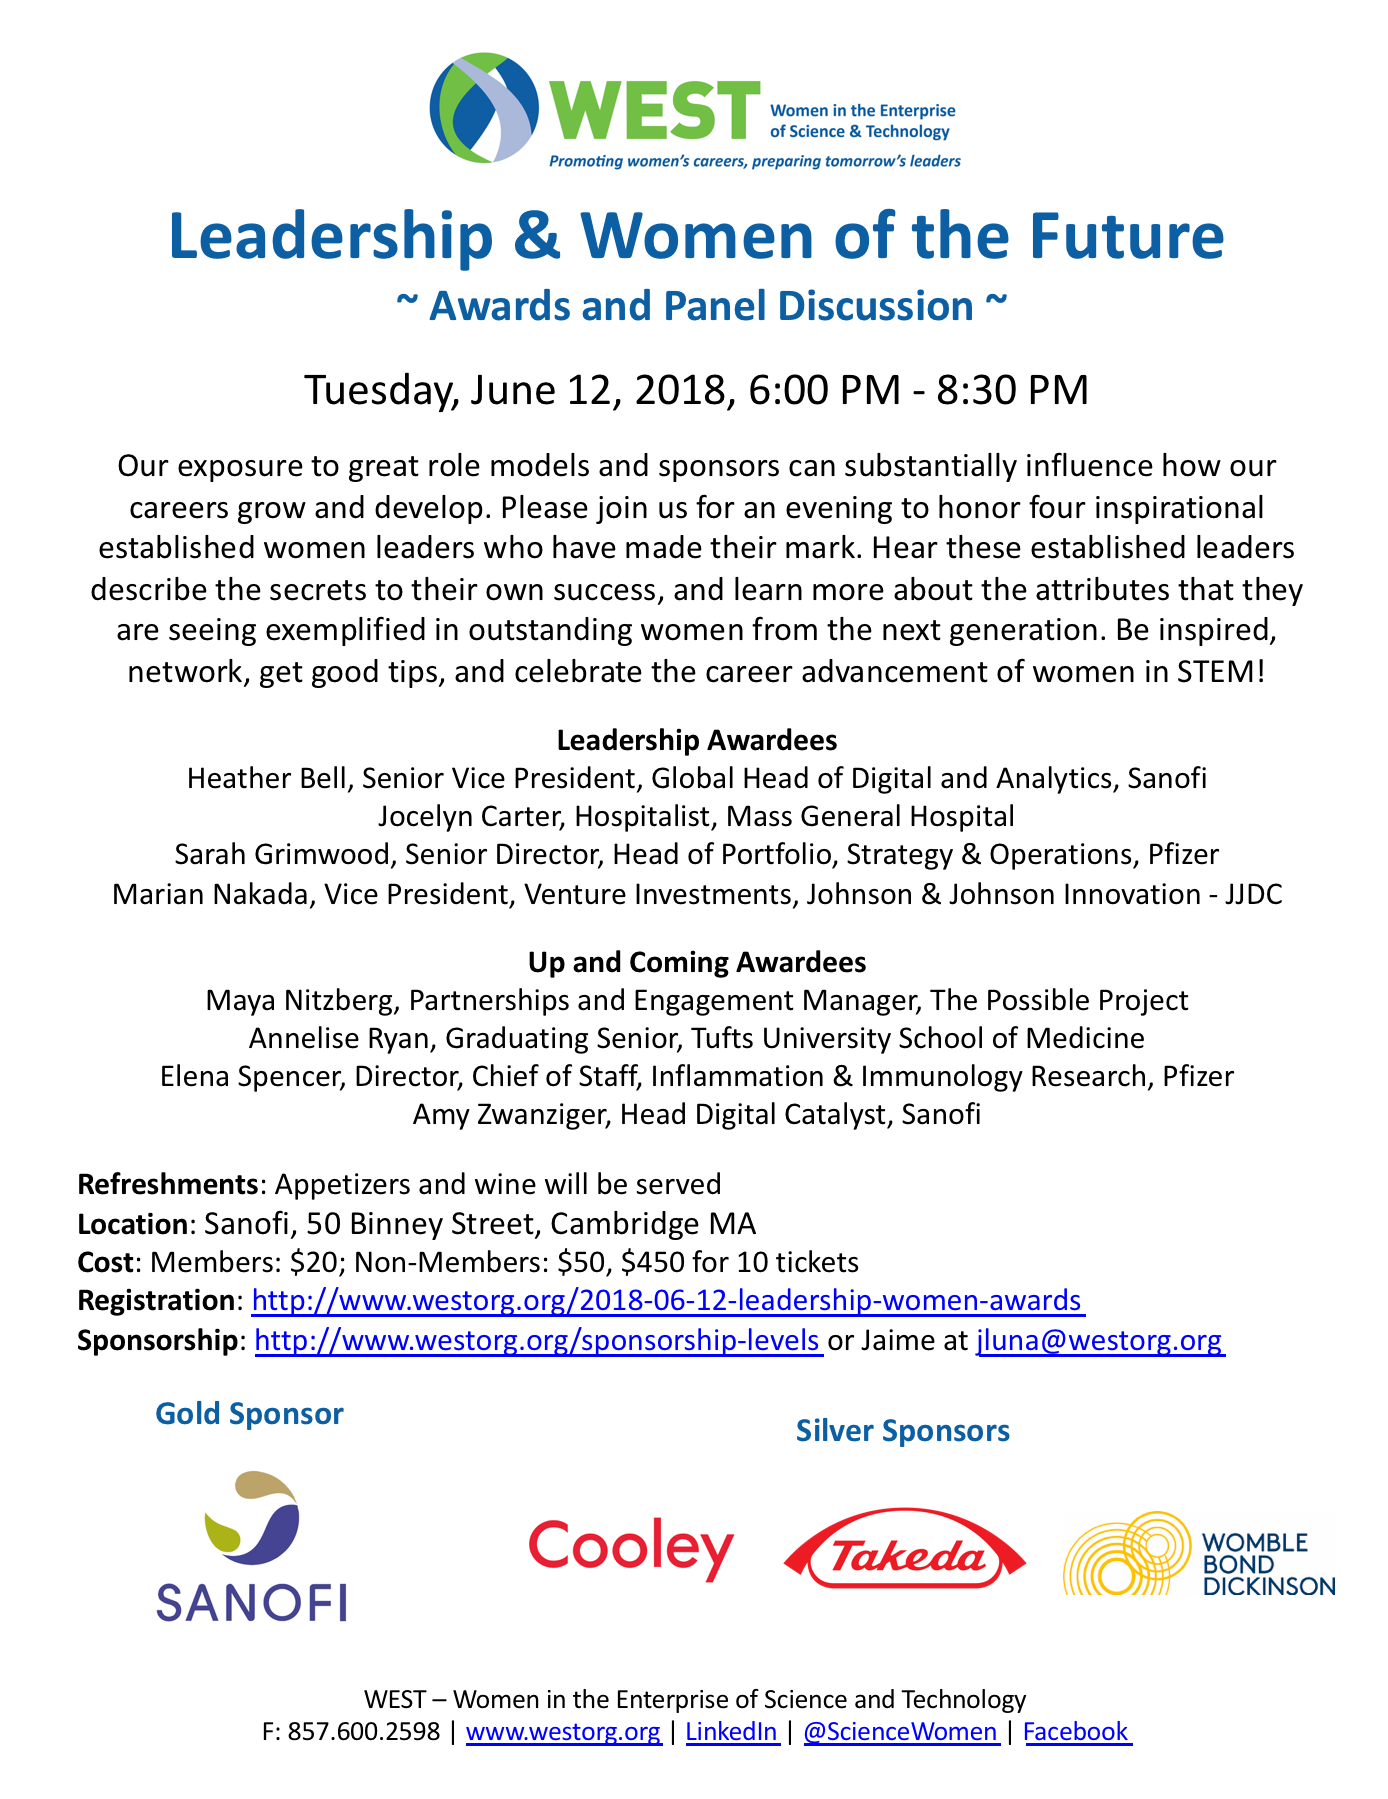 2018 06 12 Leadership And Women Of The Future Awards And Panel Discussion Leadership Women Leaders Stem Careers